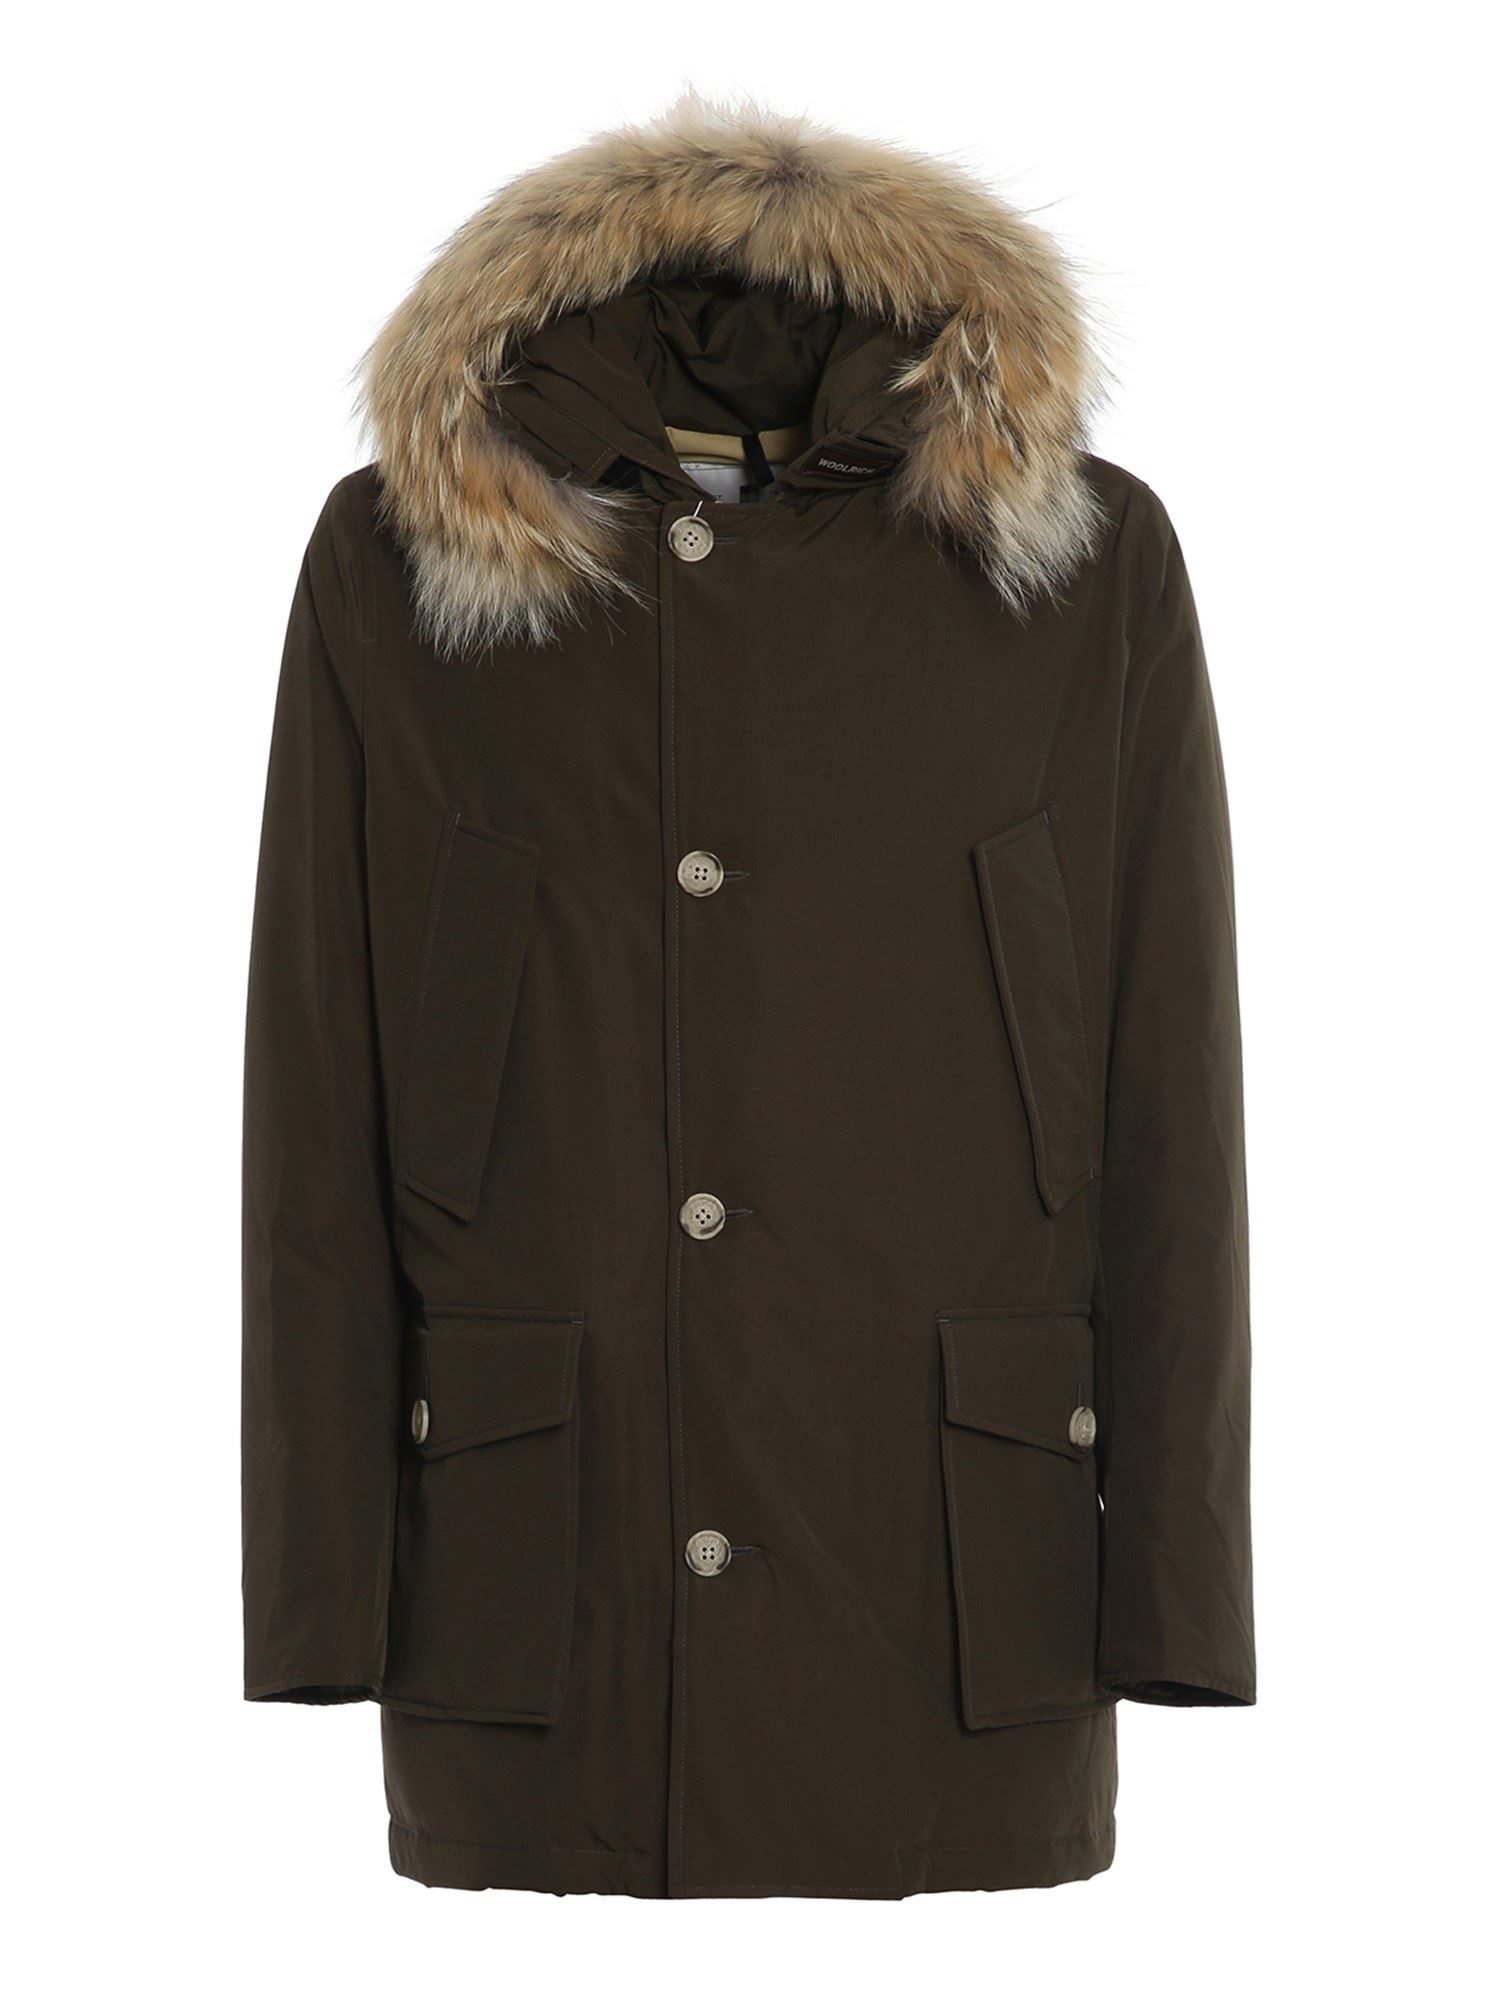 Woolrich Downs ARTIC PARKA DOWN JACKET IN BROWN